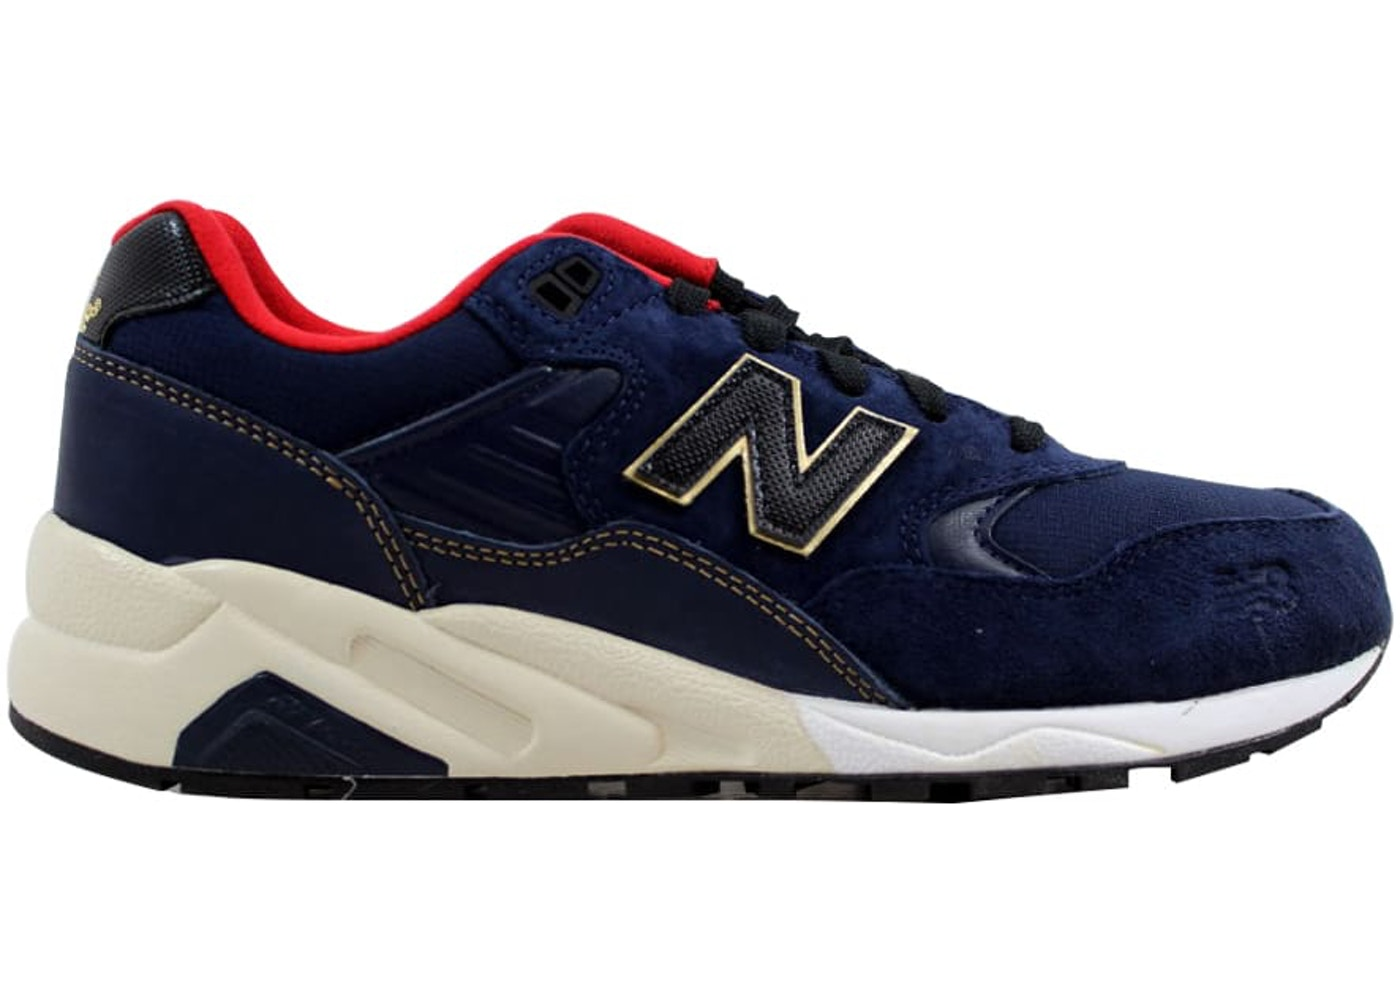 new product 27ef9 e21aa New Balance 580 Elite Navy/Red-White